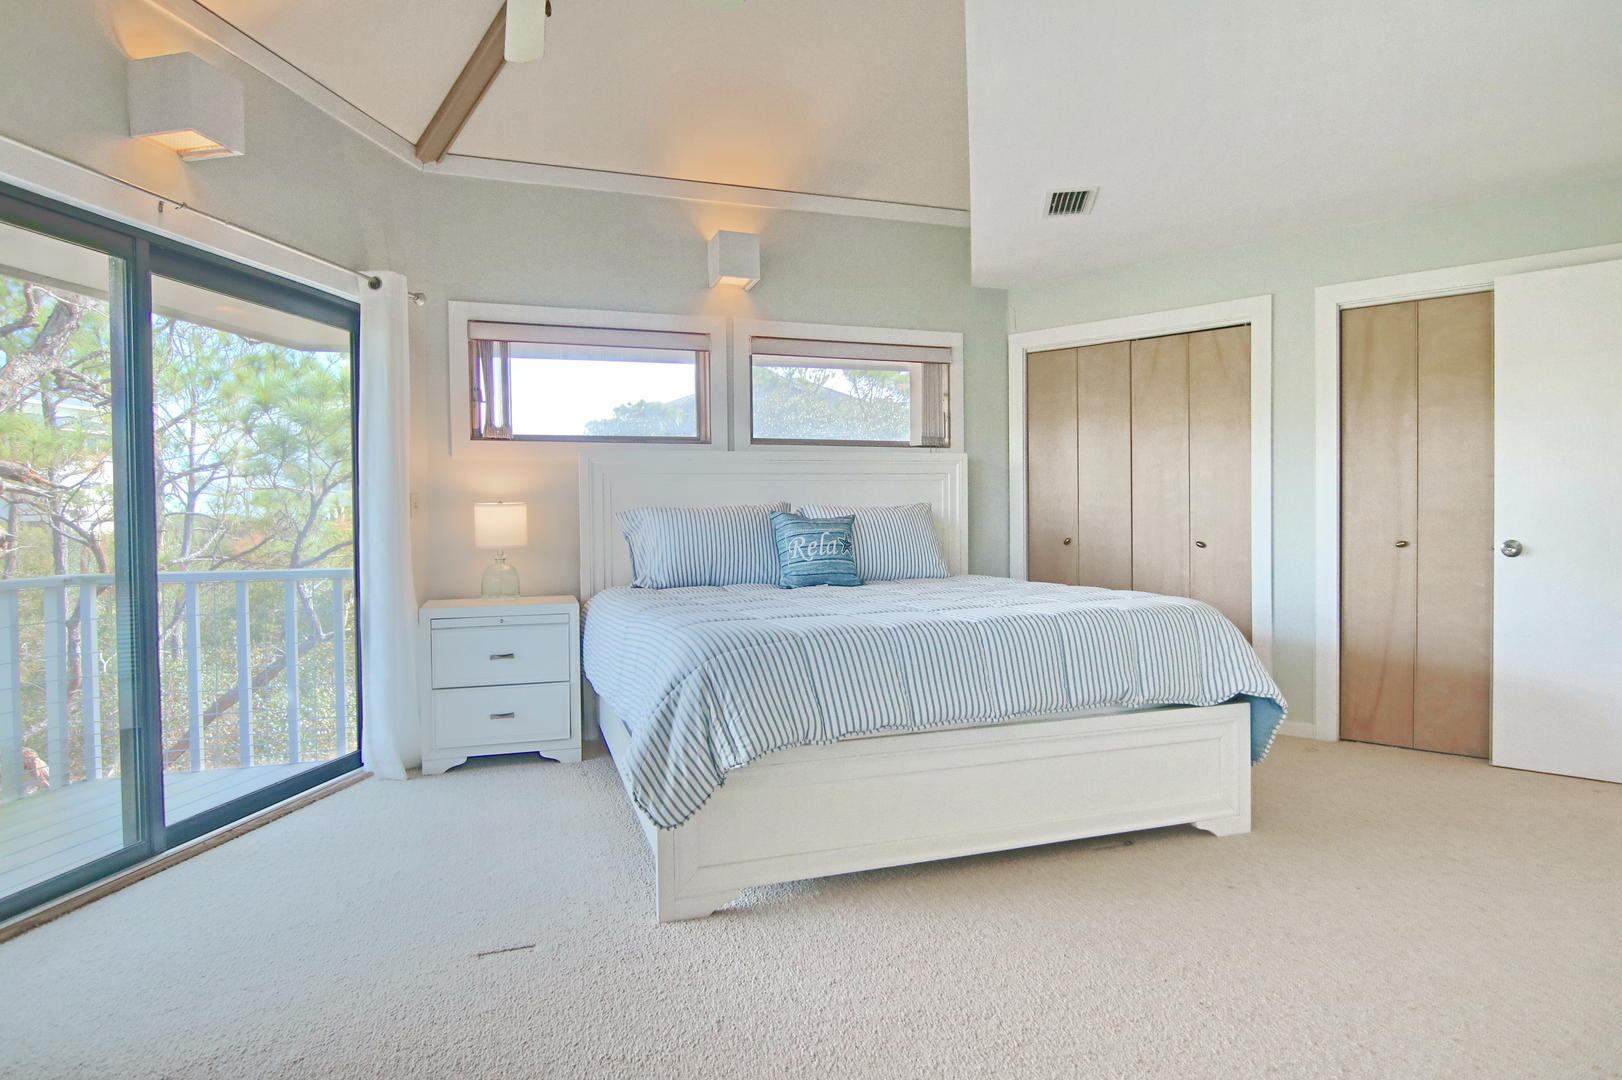 Catch some z's in this spacious king bedroom